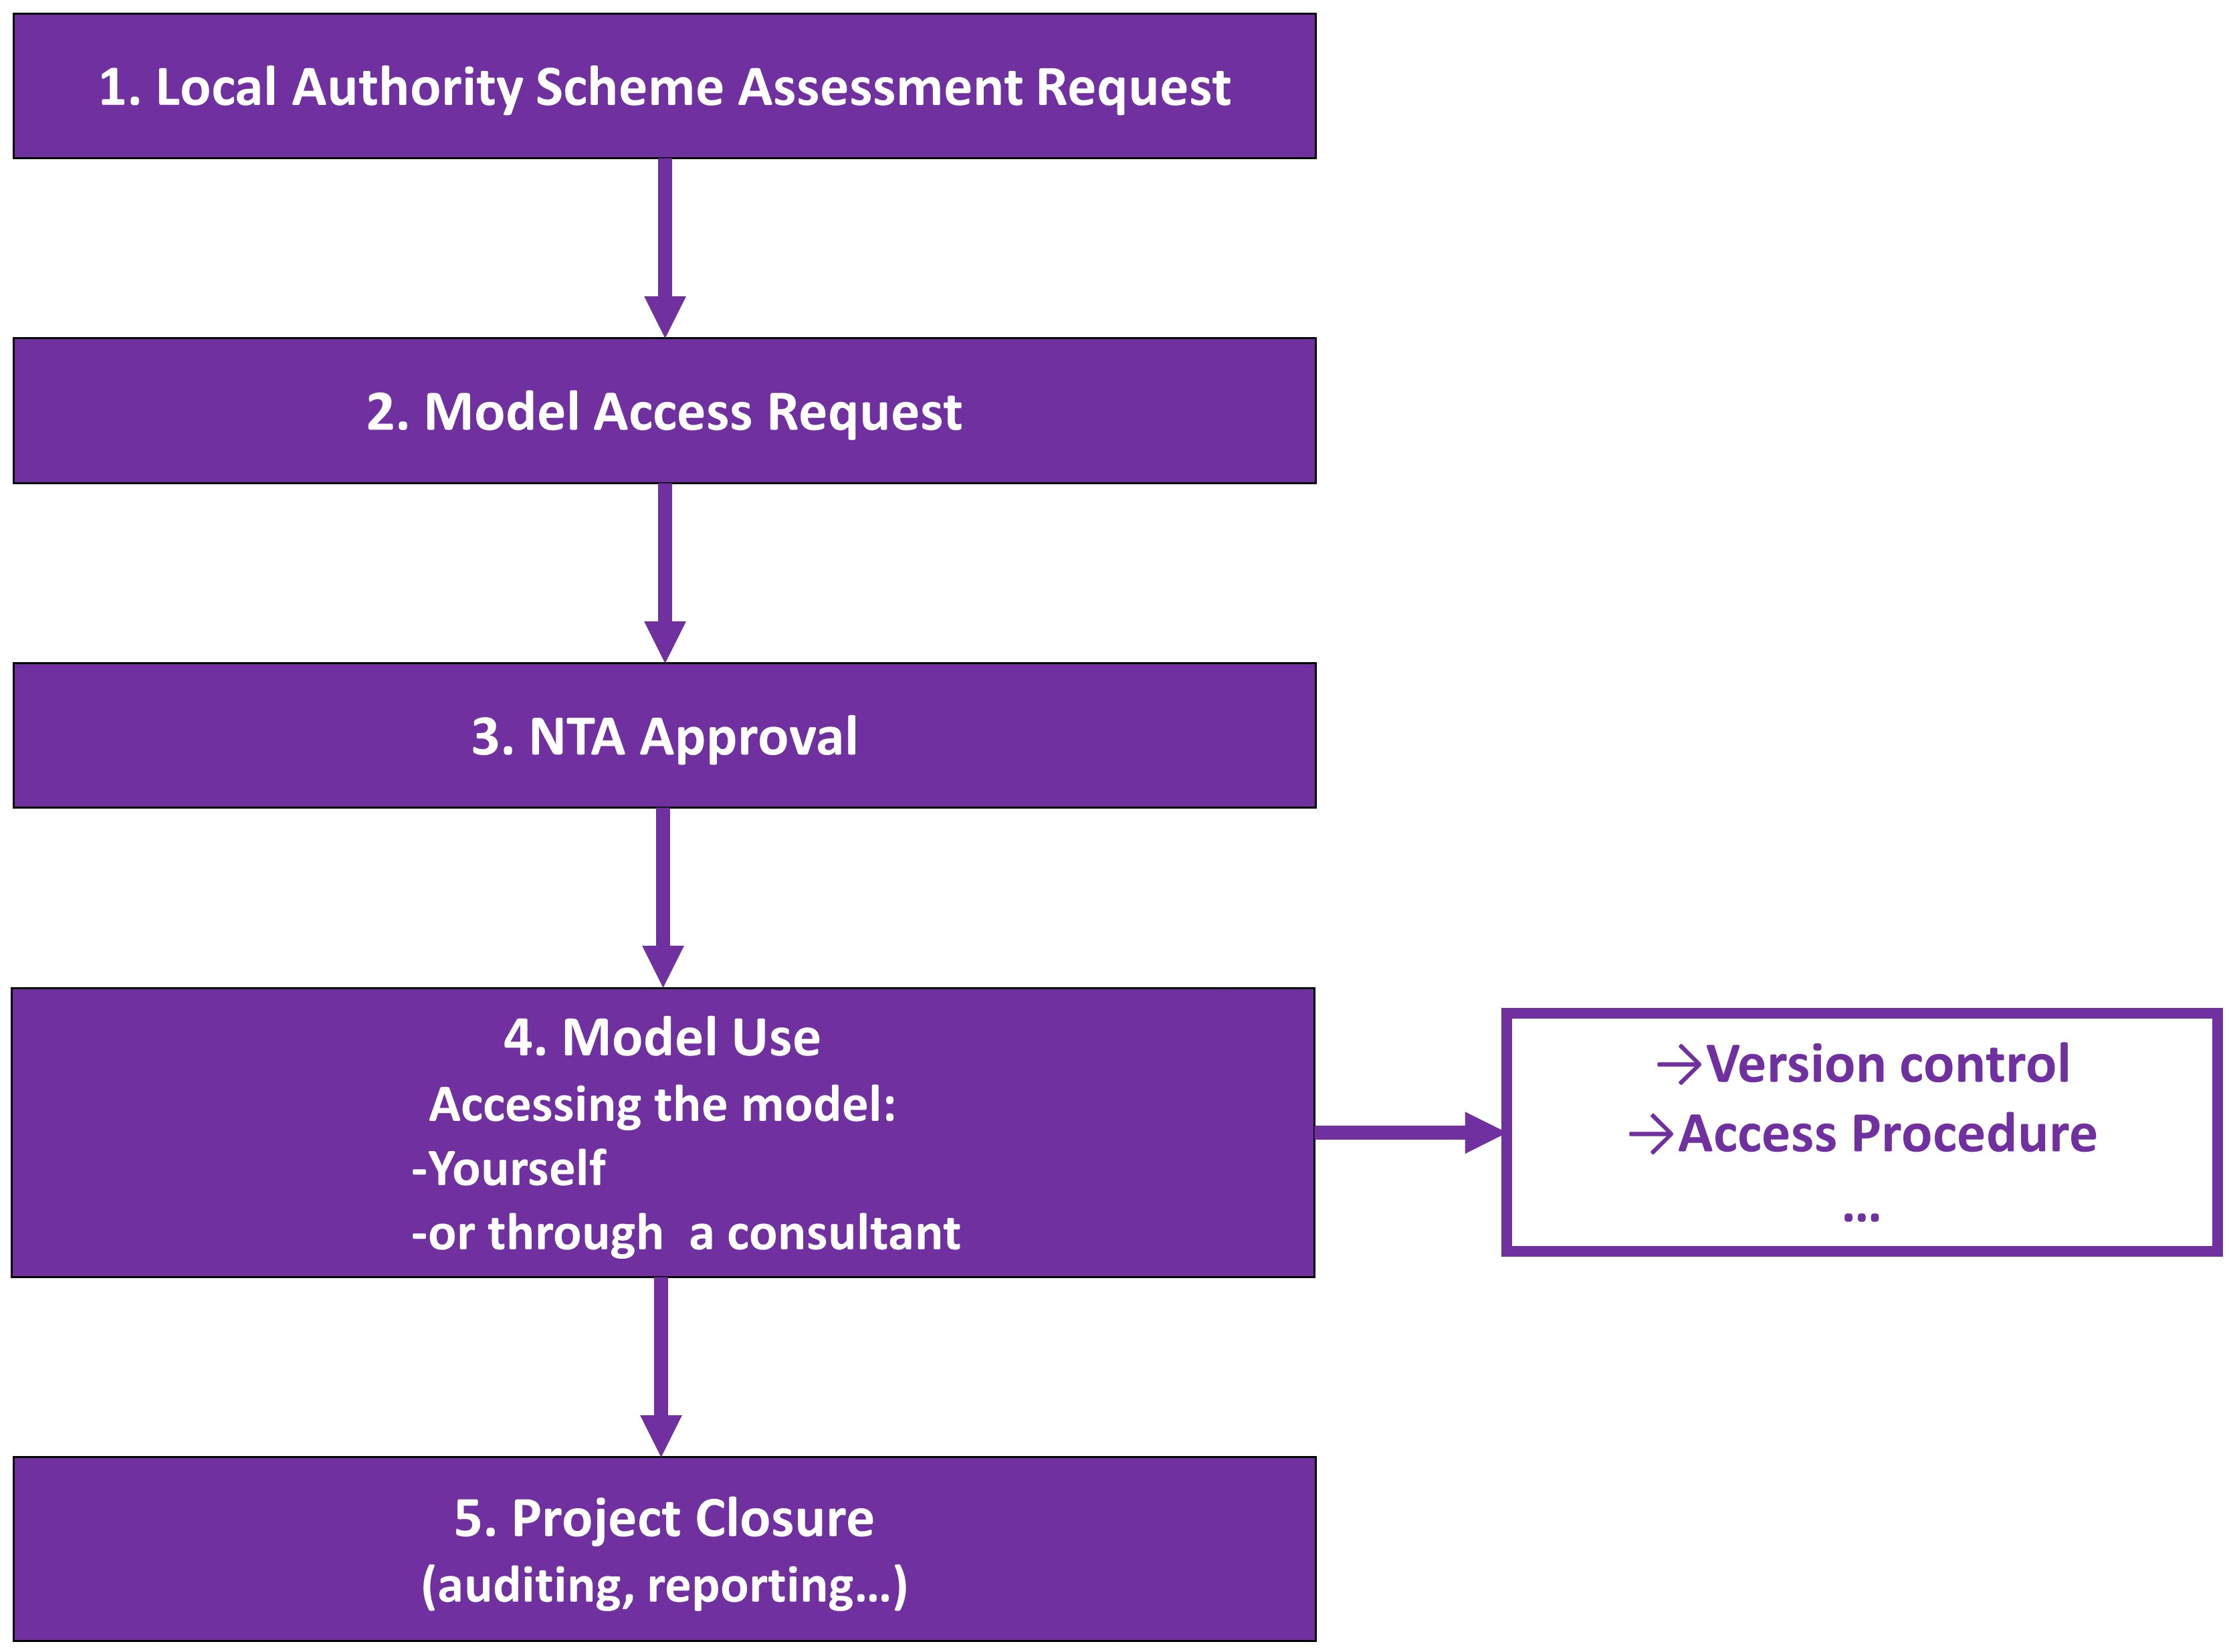 ModelAccess_Flowchart